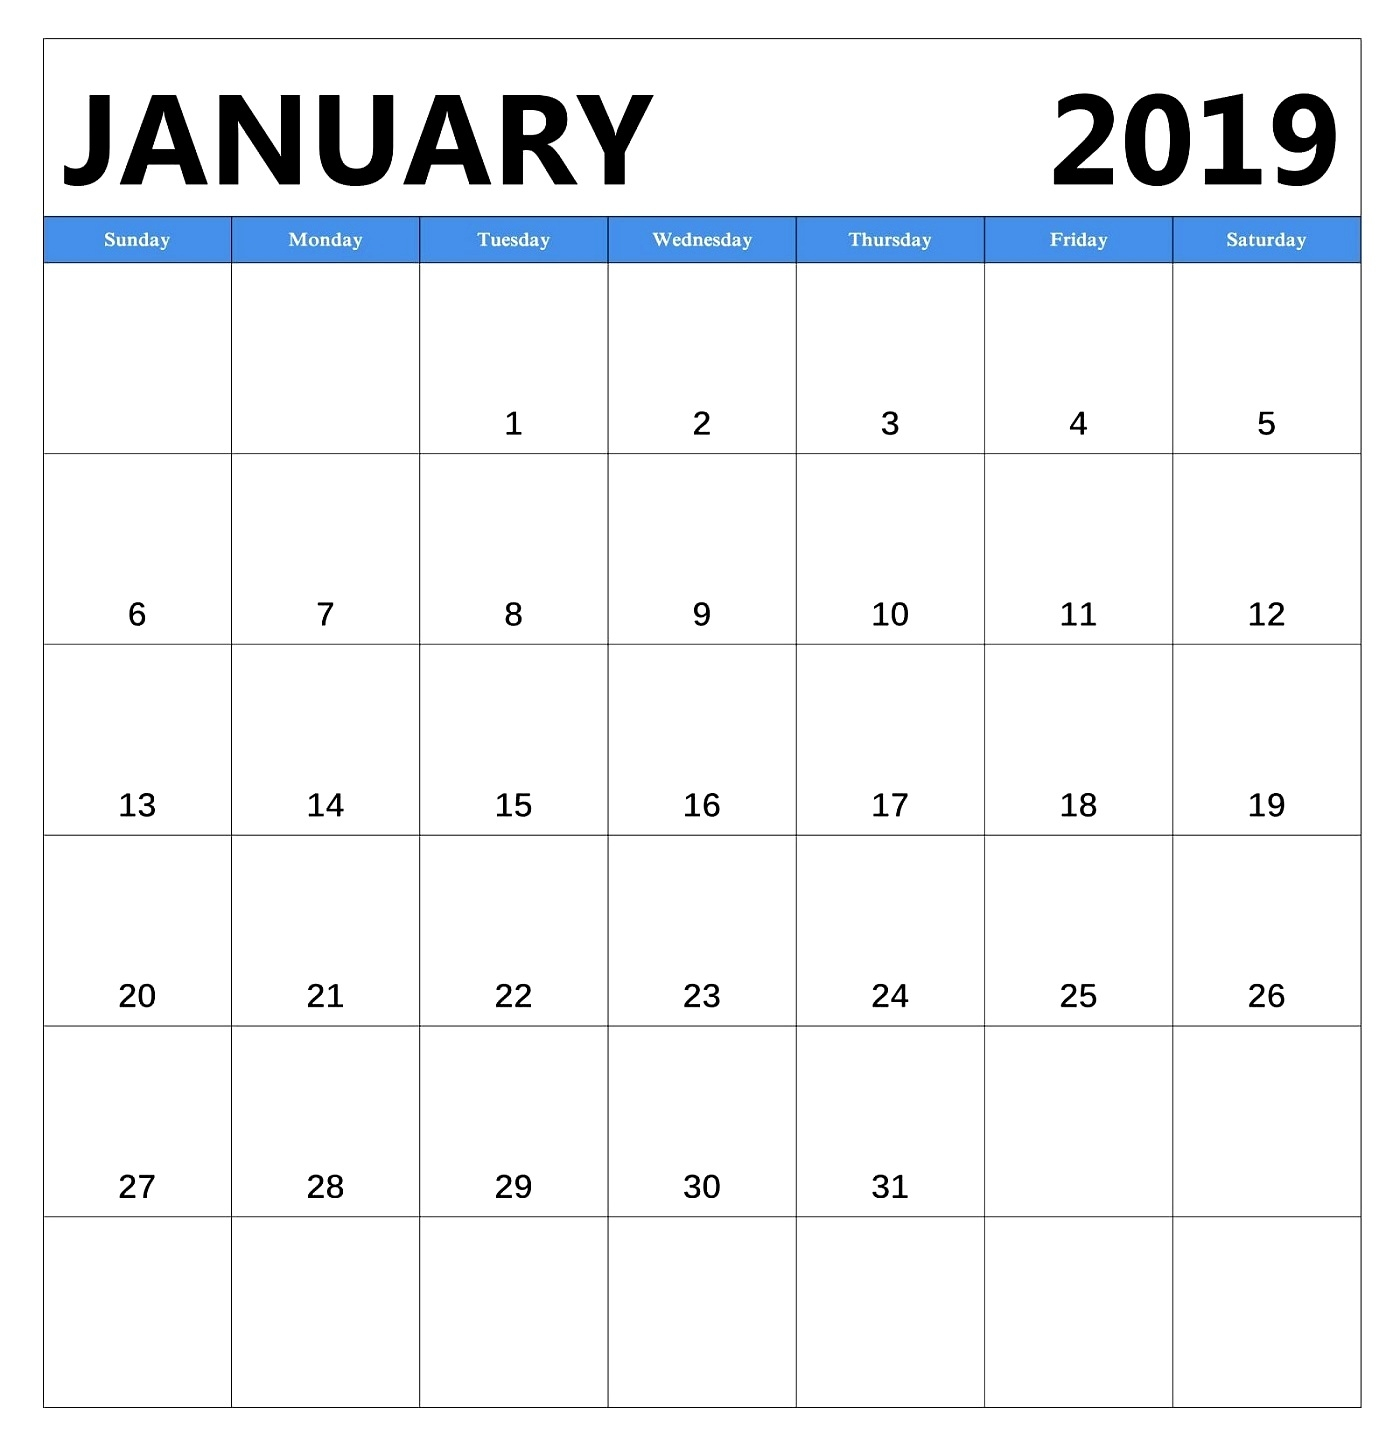 january 2019 free download calendar pdf excel word::January 2019 Calendar Printable Template